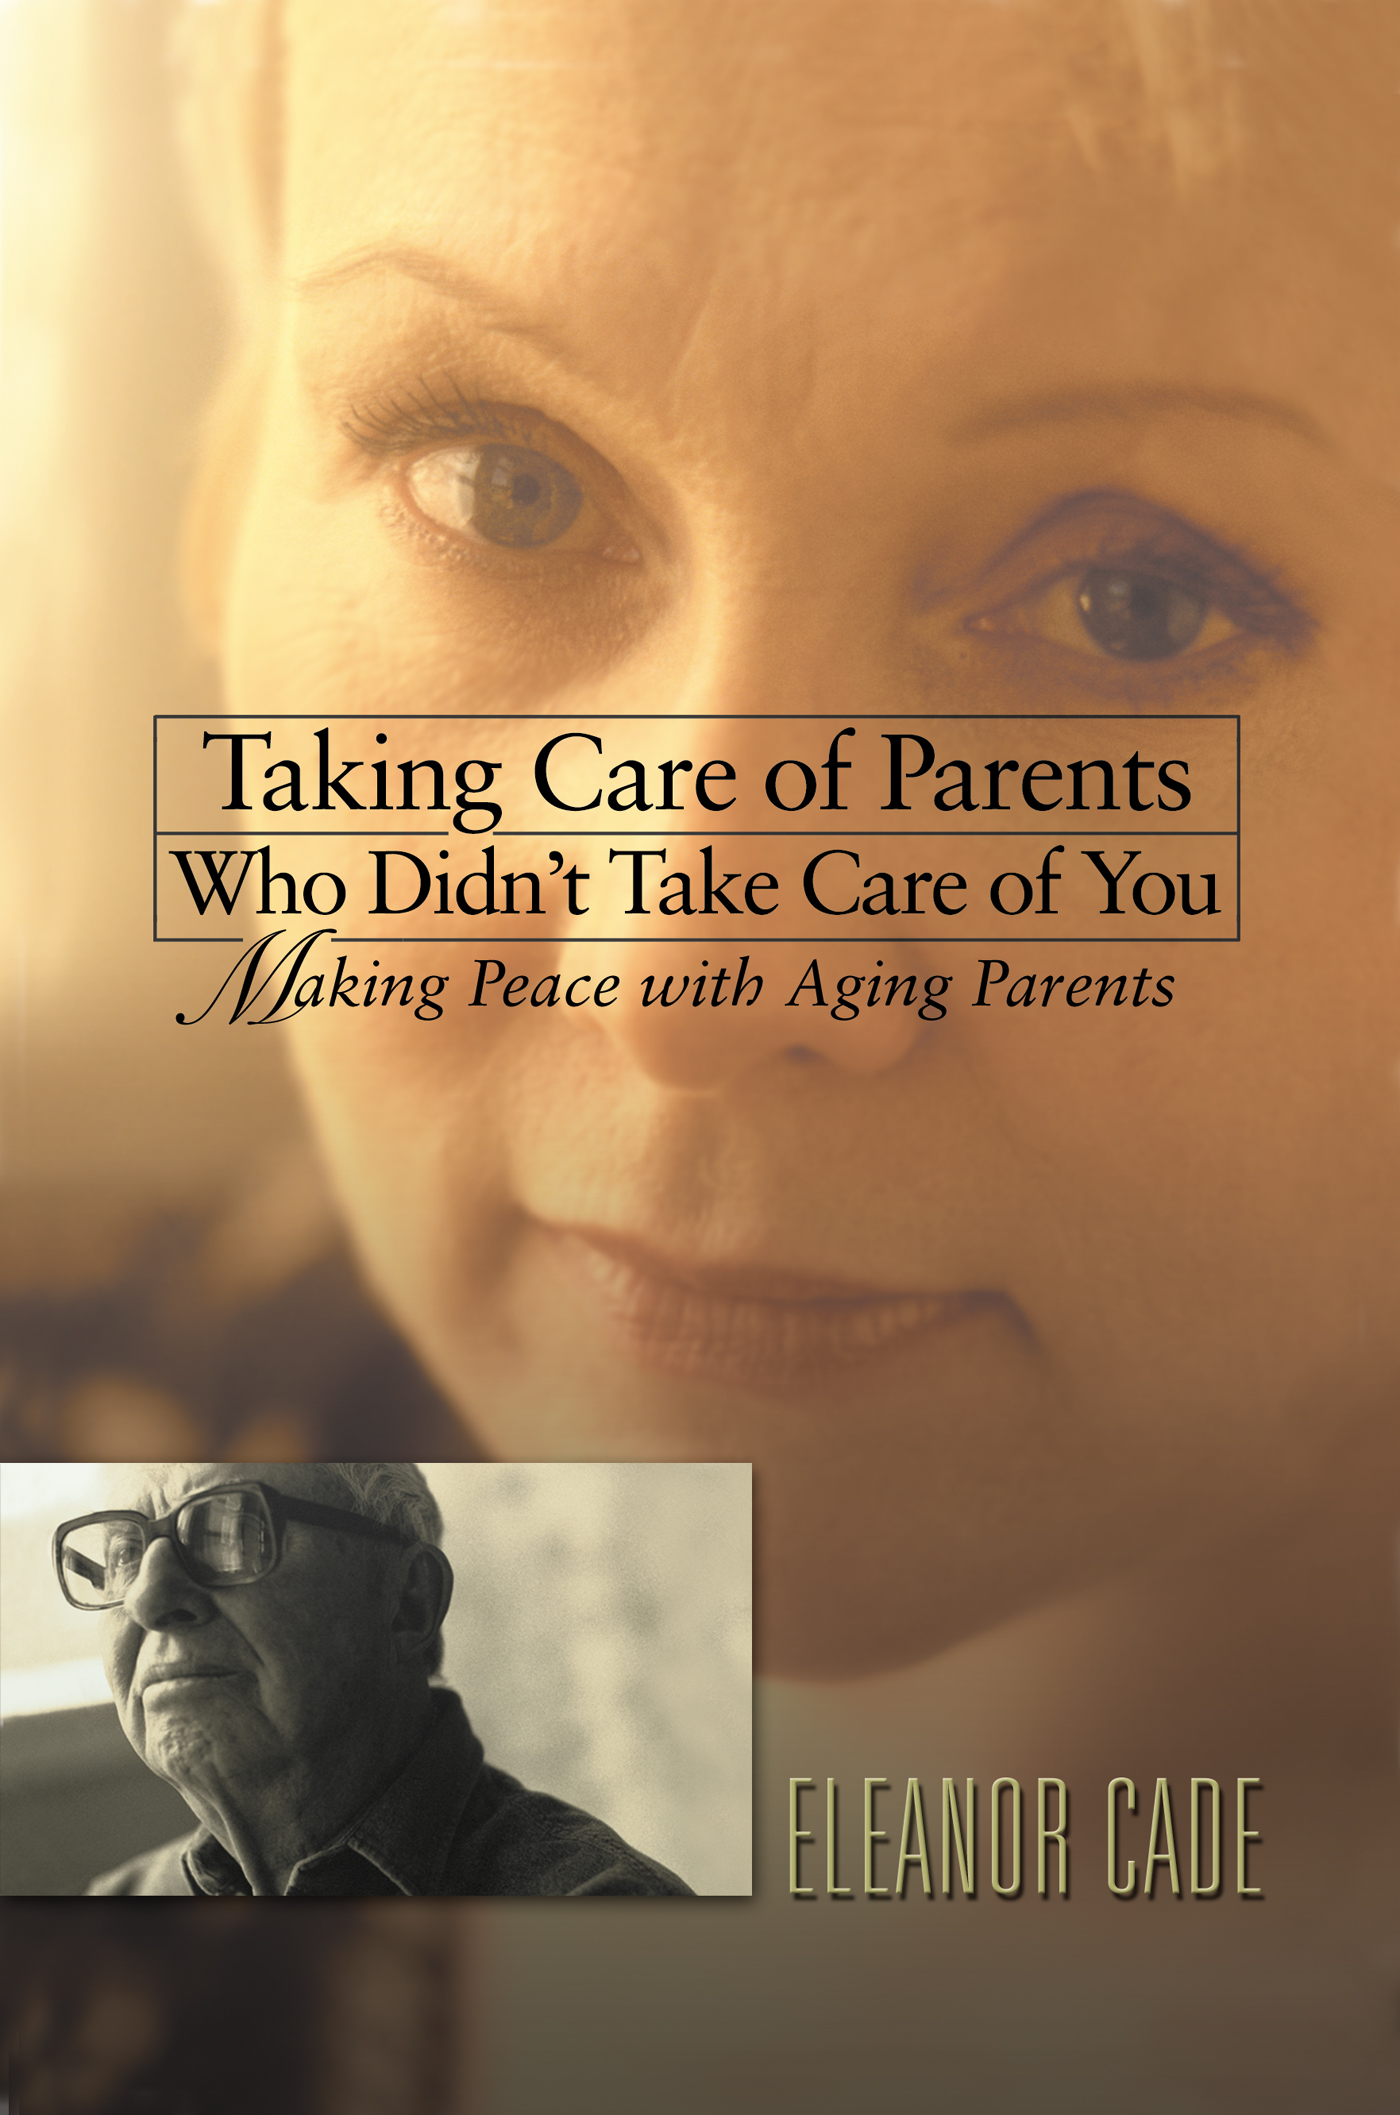 Taking Care of Parents Who Didn't Take Care of You